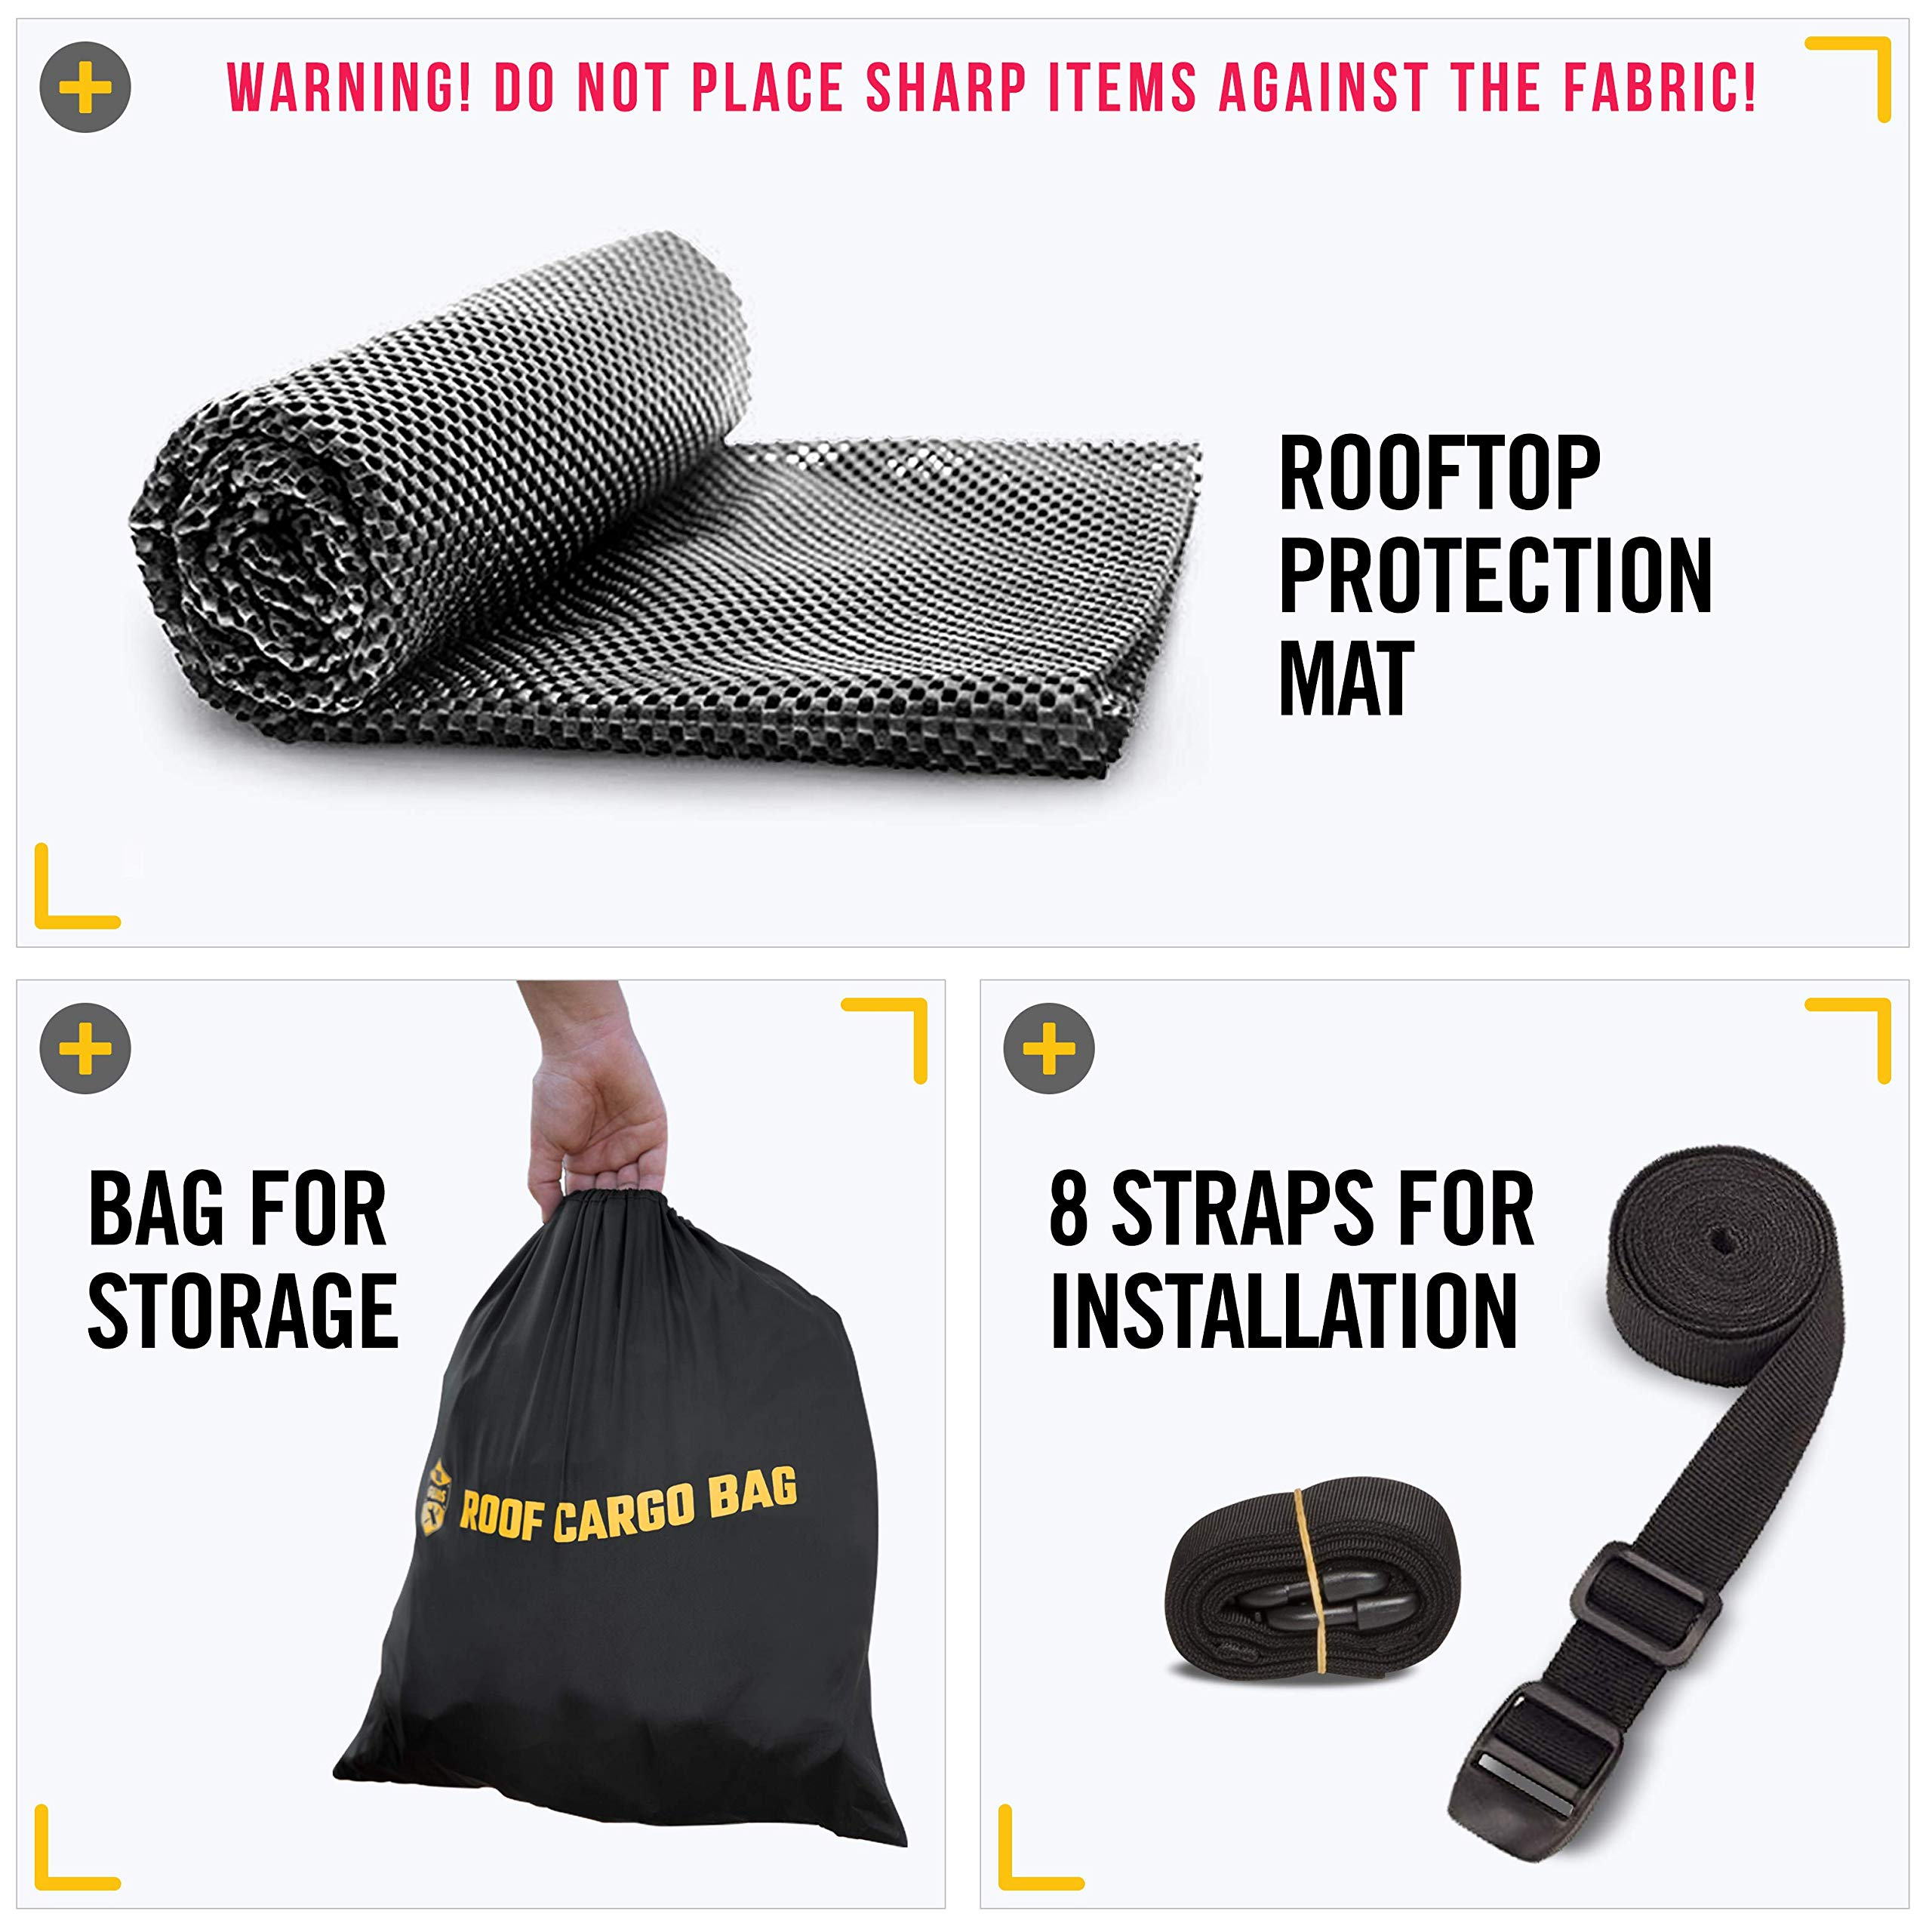 Car Top Carrier Roof Bag + Protective Mat - 100% Waterproof & Coated Zippers 15 Cubic ft - for Cars with or Without Racks by ToolGuards (Image #2)